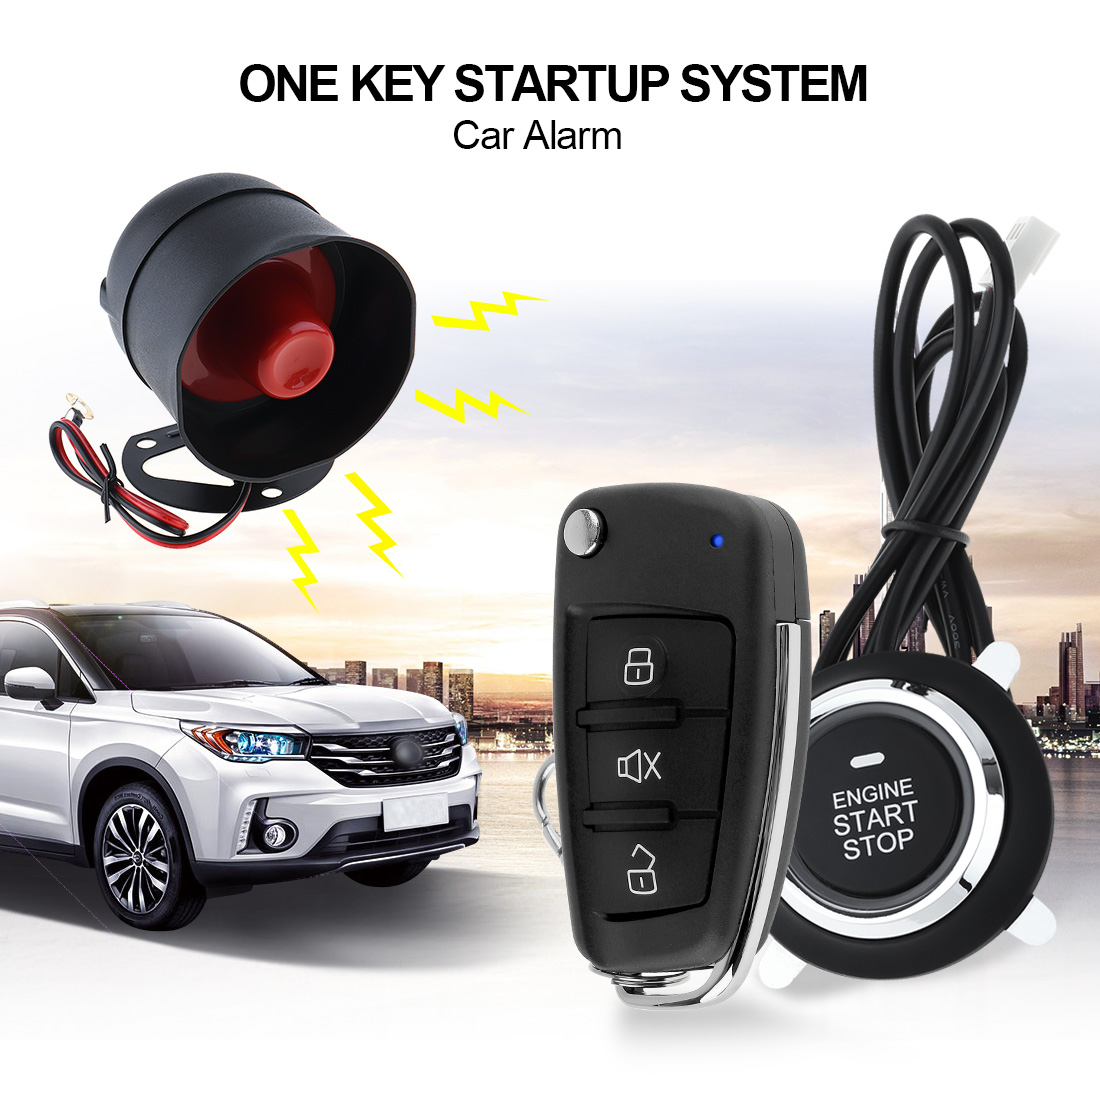 Universal Car Alarm Security System Remote Start Stop Button Engine System Vehicle Keyless Entry Door Lock